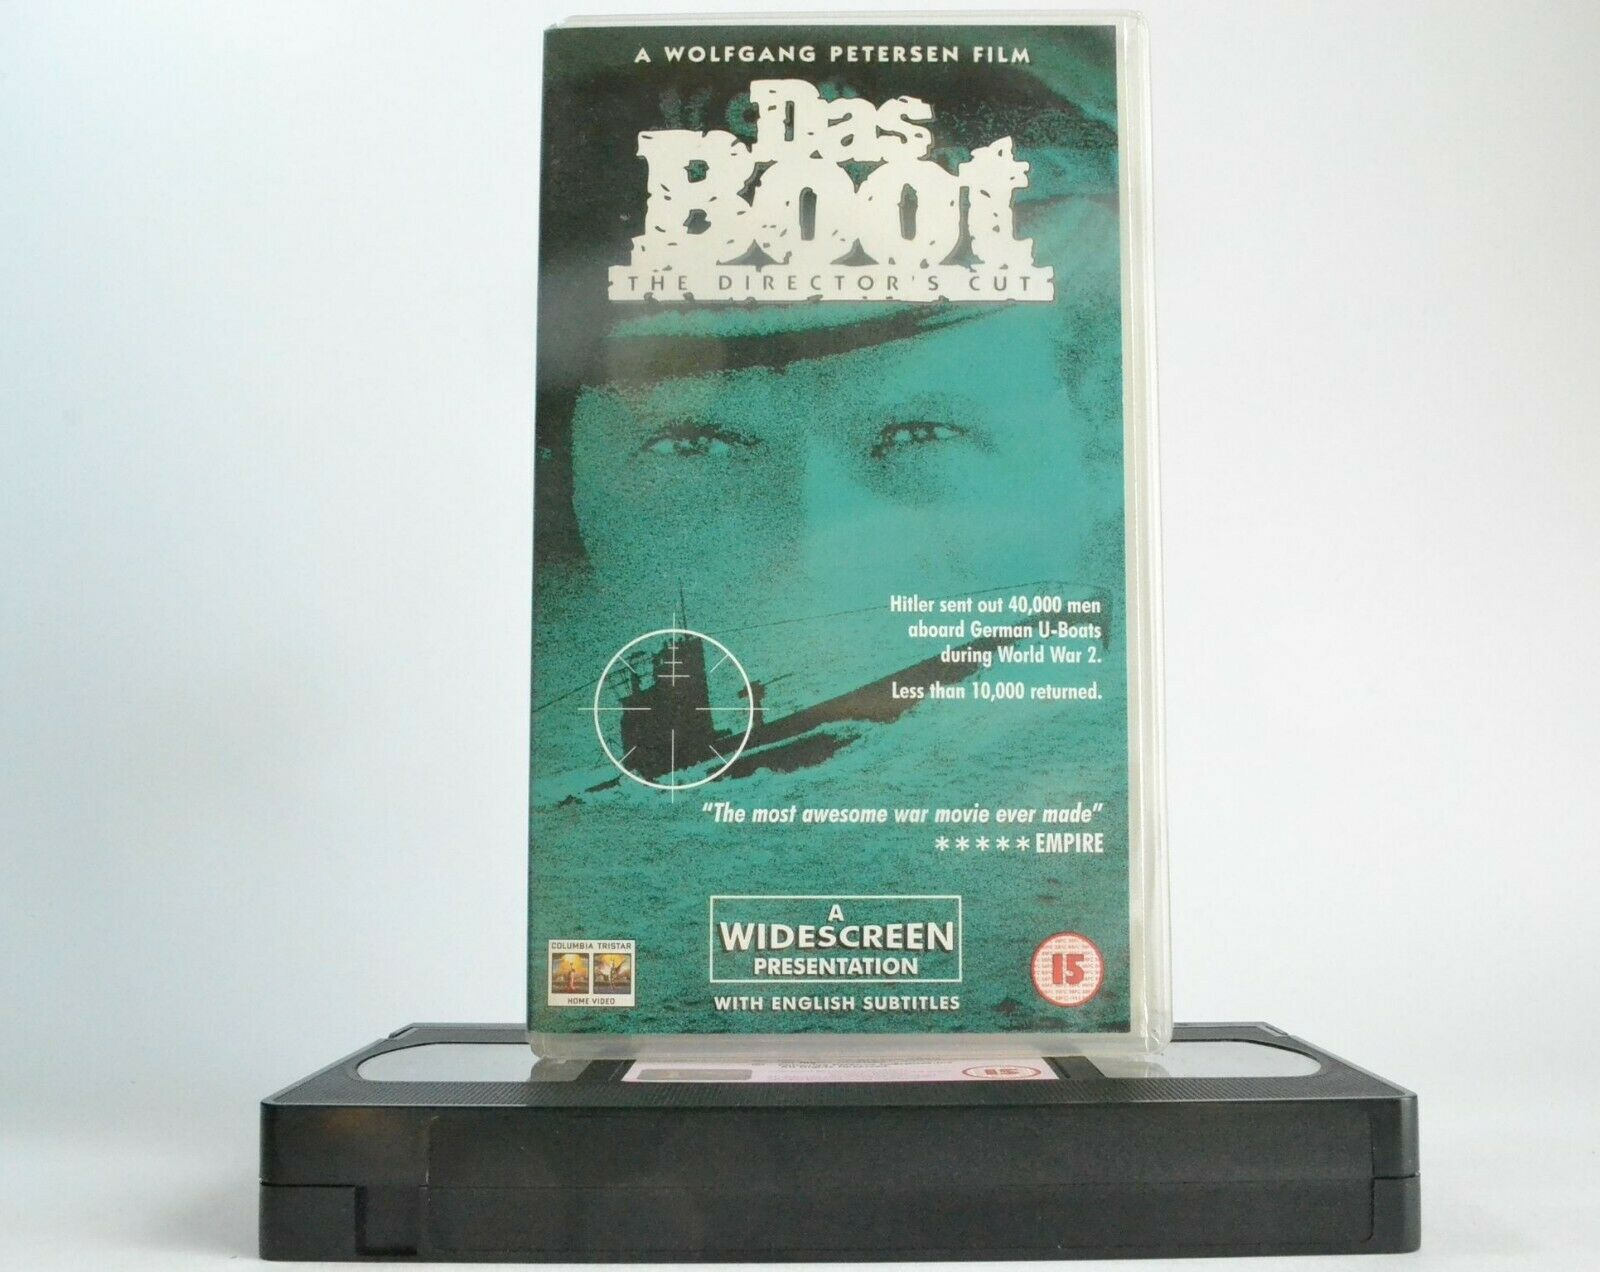 1981, Boot, Cut, Das, Director's Cut, Drama, Nightmare, Nightmares, Pal, Submarine, The, VHS